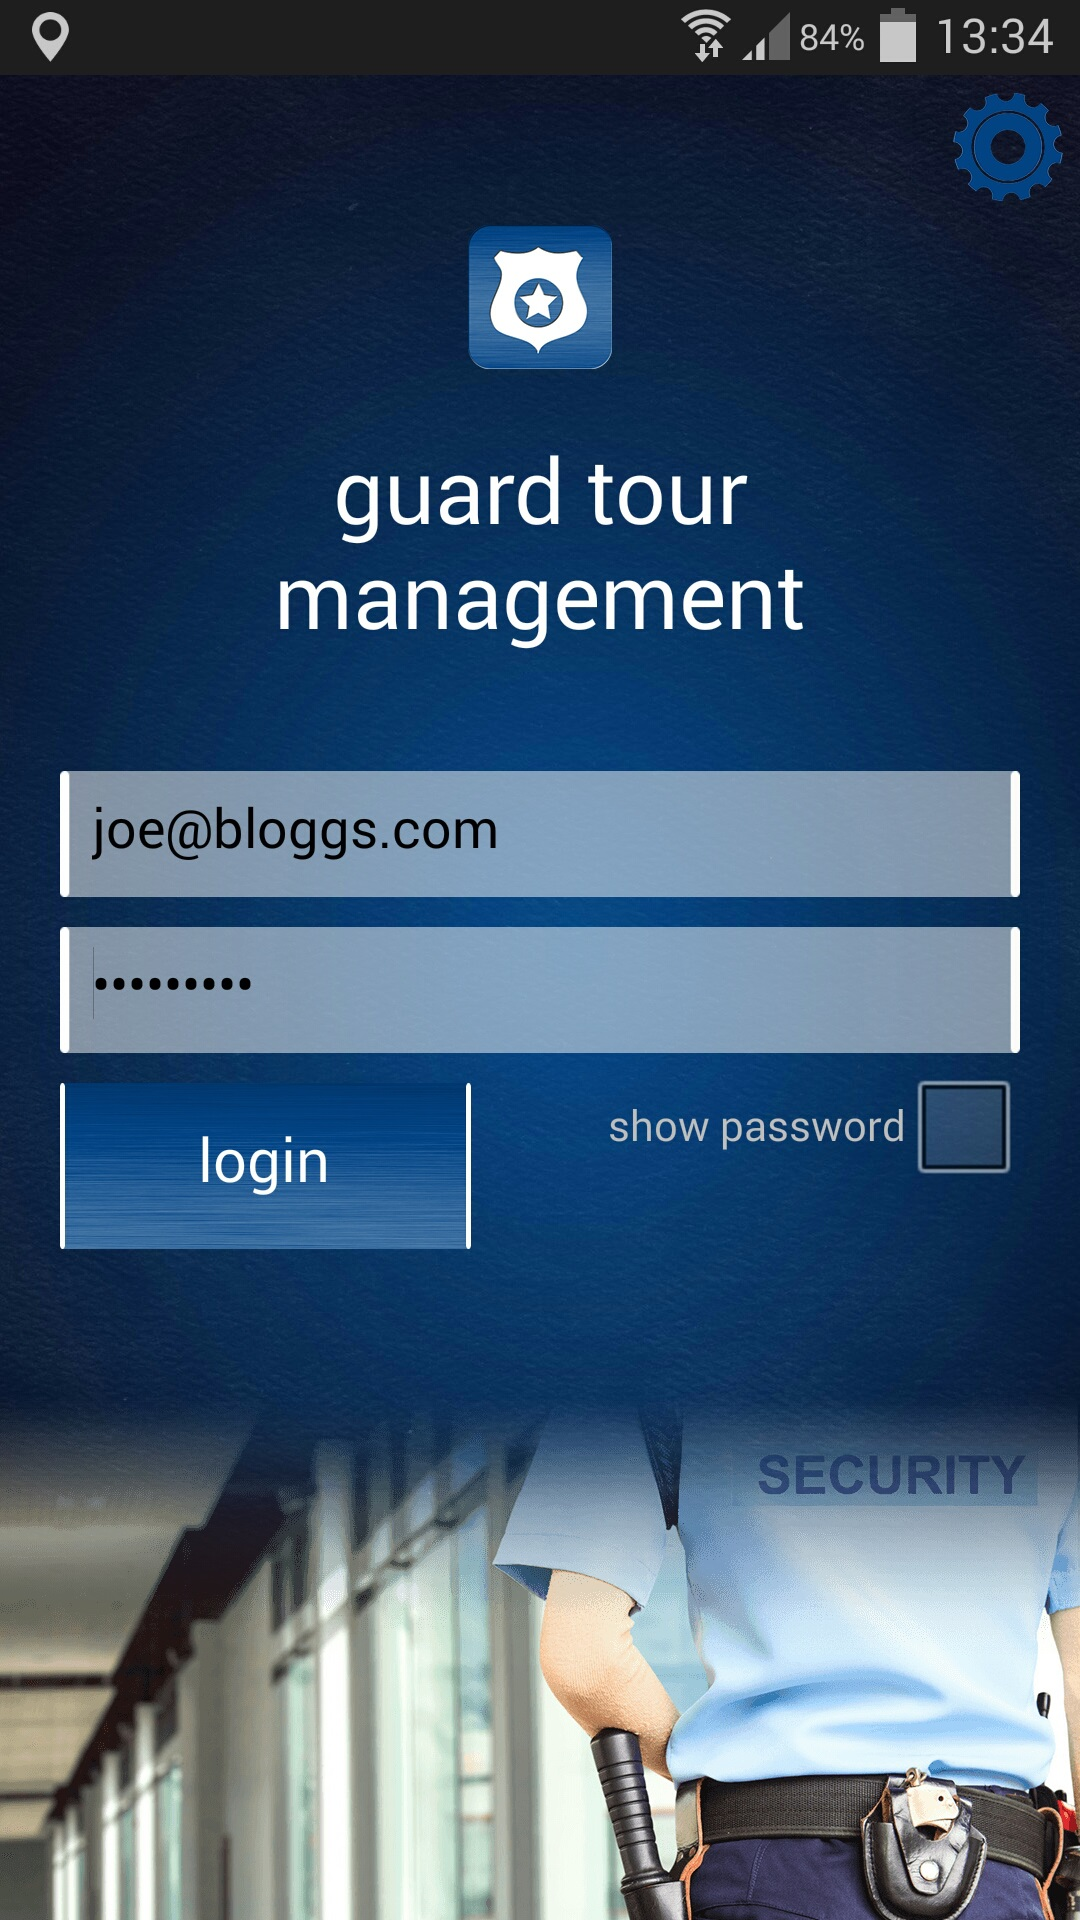 guardTourManagement_EN_1